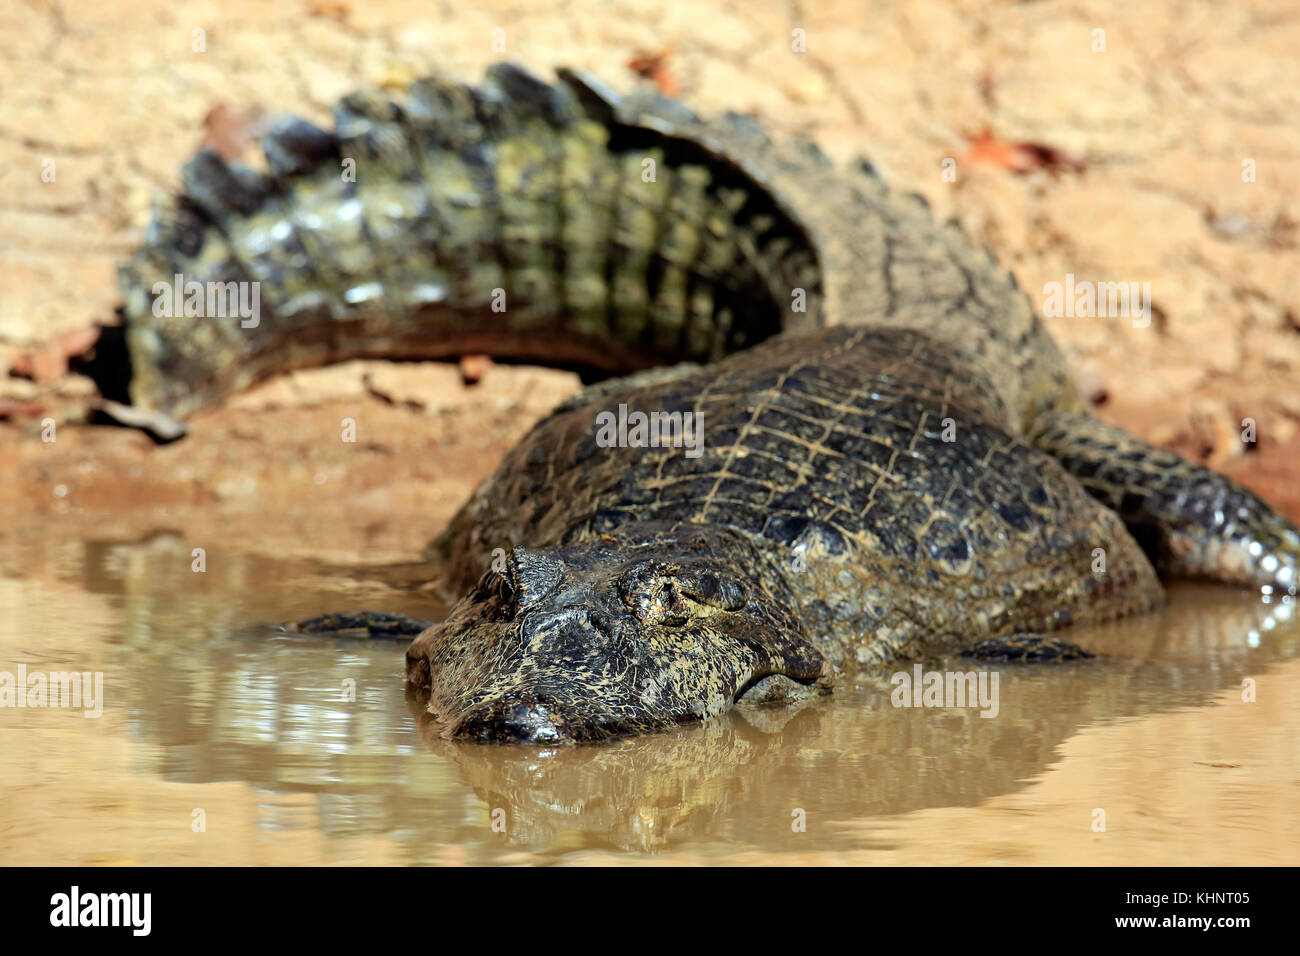 Spectacled Caiman the Water by the River Bank. Rio Claro, Pantanal, Brazil - Stock Image